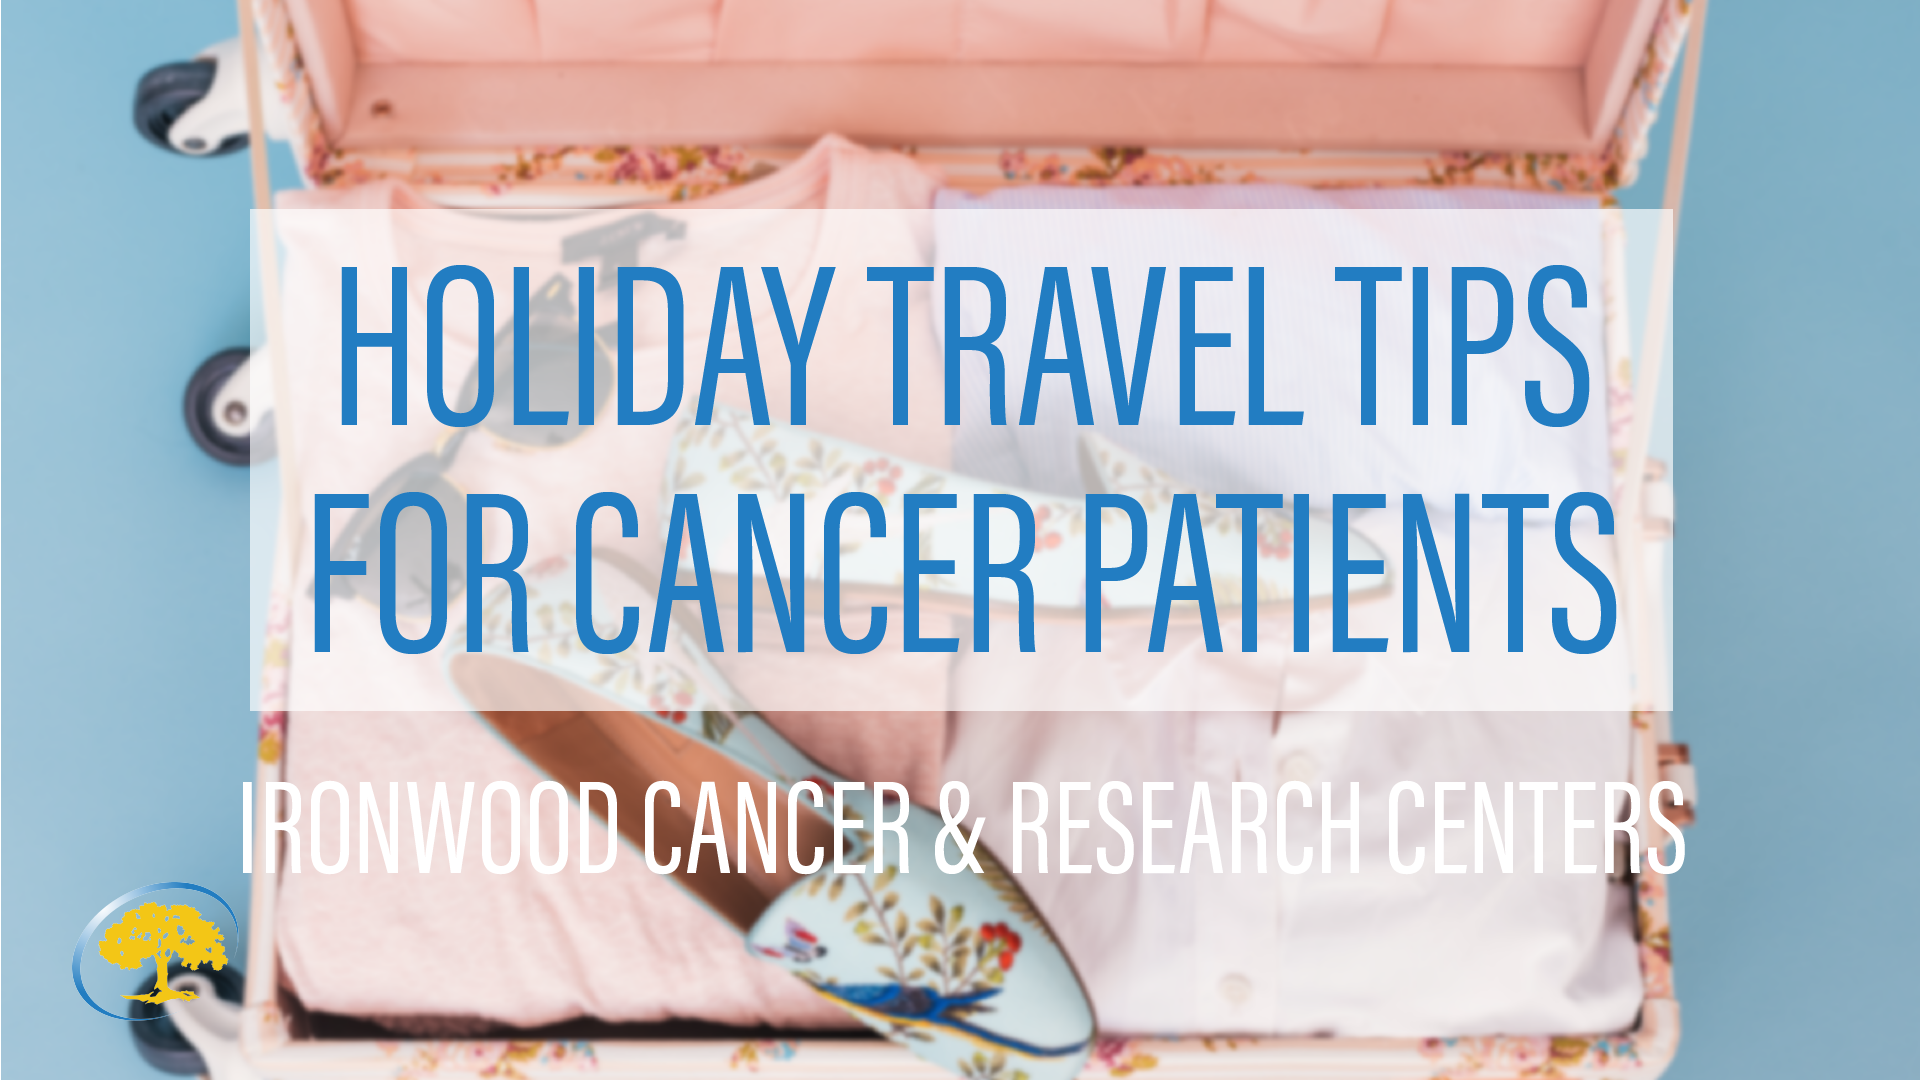 Holiday Travel Tips for Cancer Patients